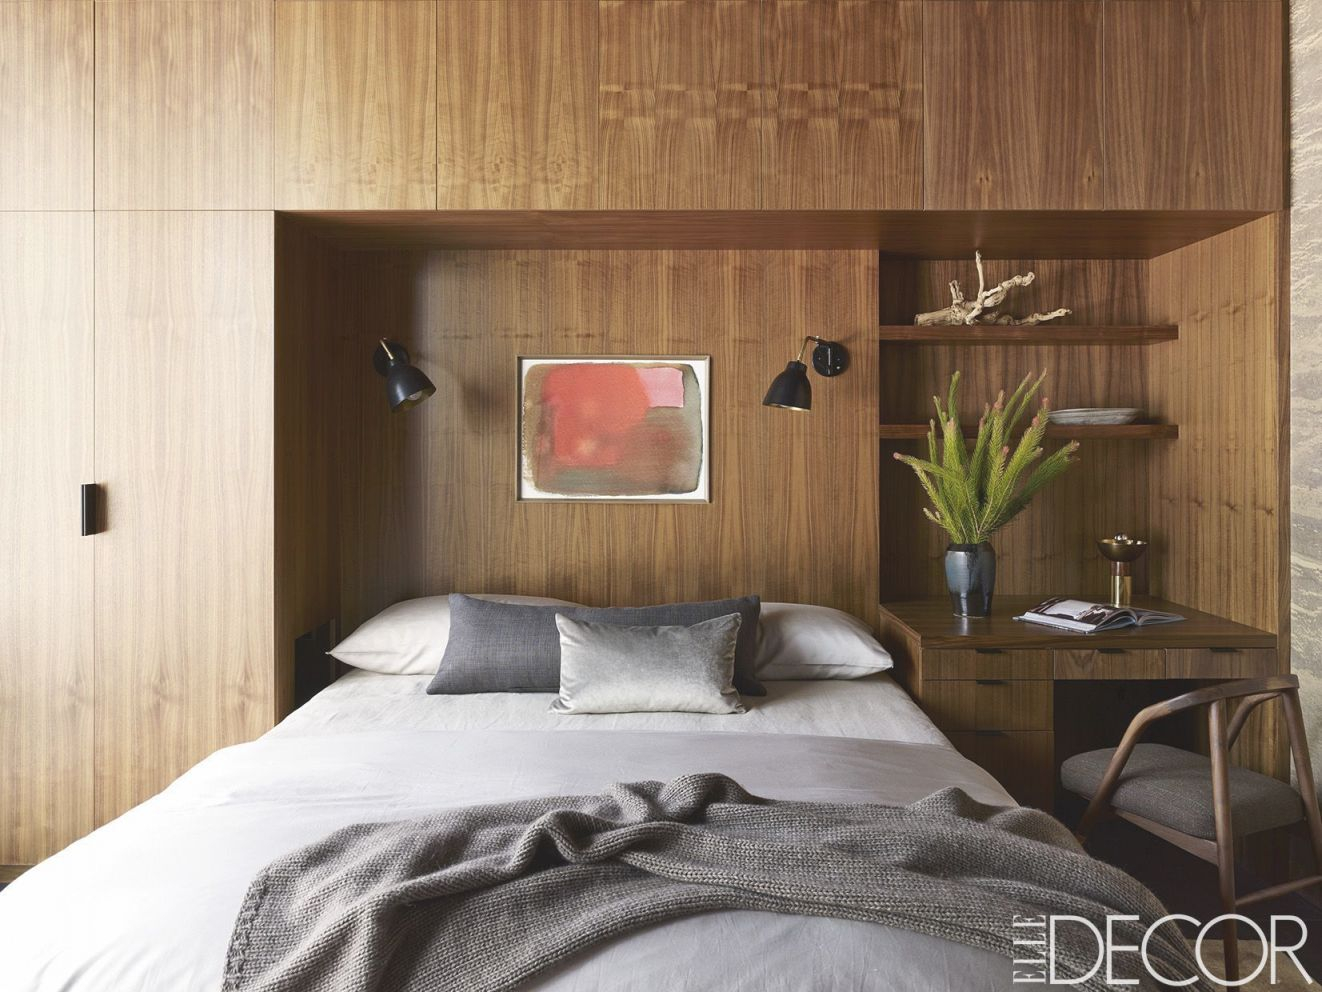 55 Small Bedroom Design Ideas – Decorating Tips For Small within Small Bedroom Decorating Ideas